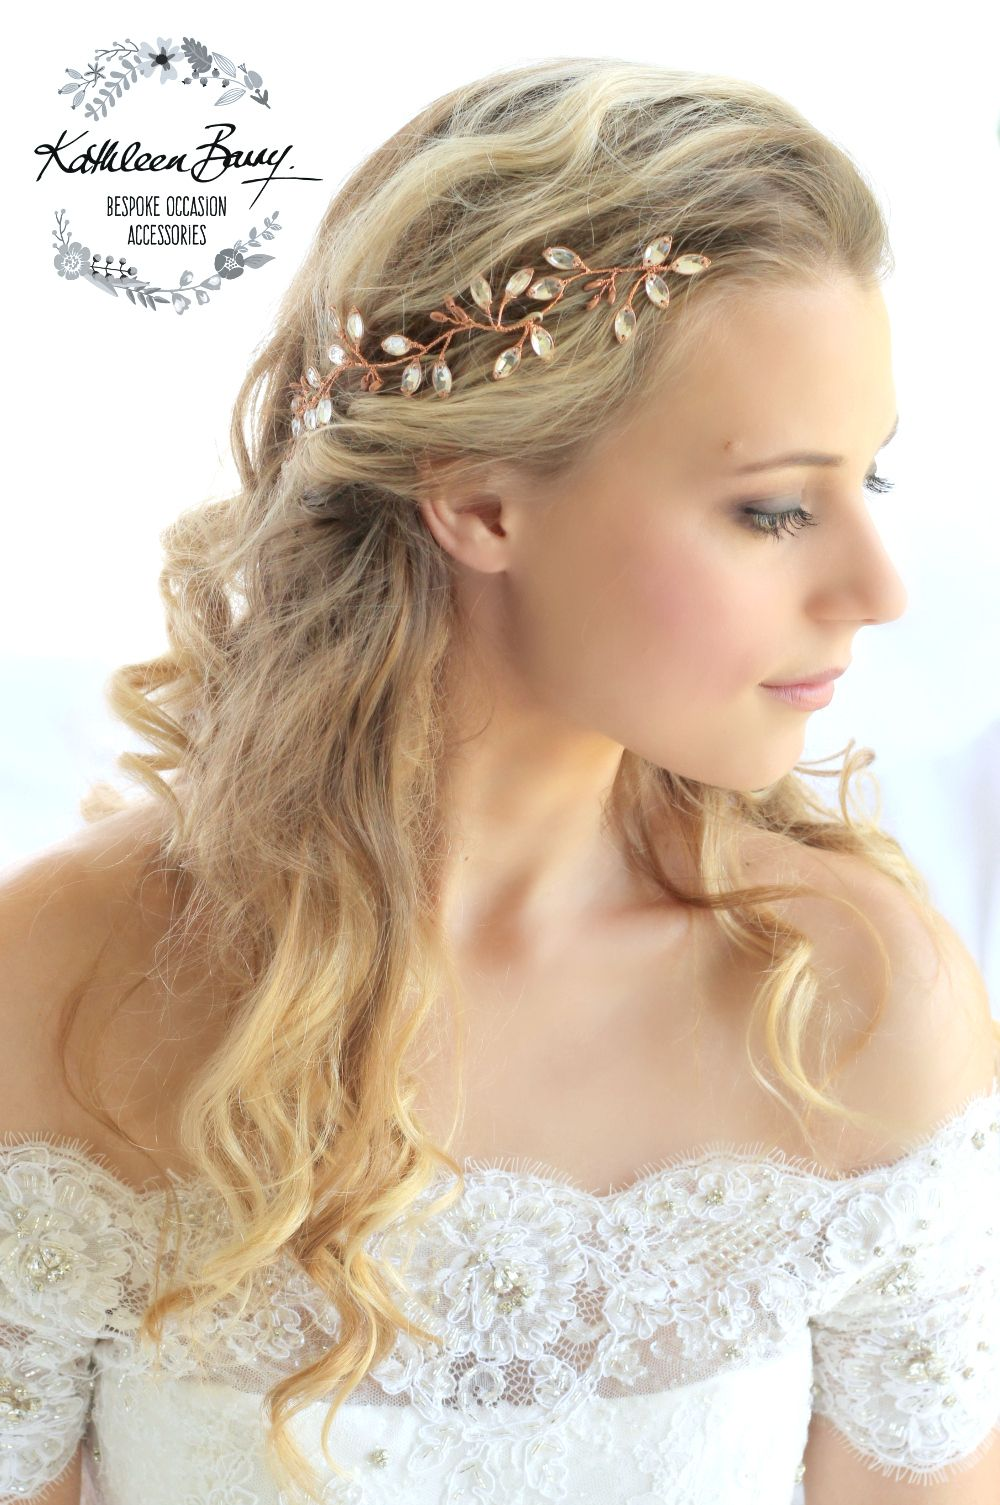 copper rhinestone hair vine headpiece rose gold crystal k